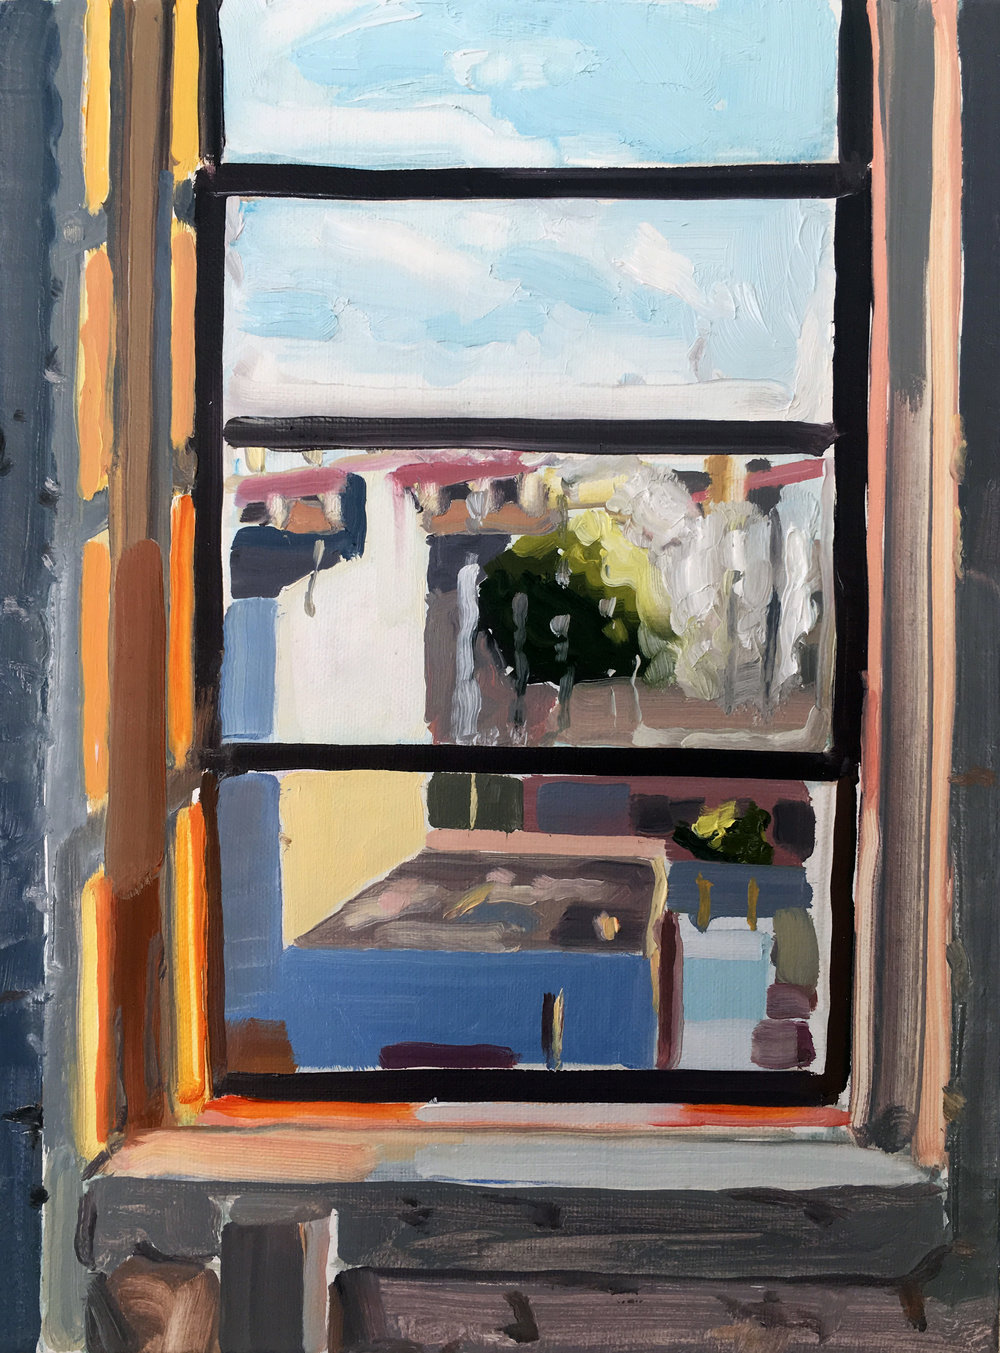 Keiran Brennan Hinton, Daytime Window 8-23, 2017, oil on linen, 12 x 9 inches